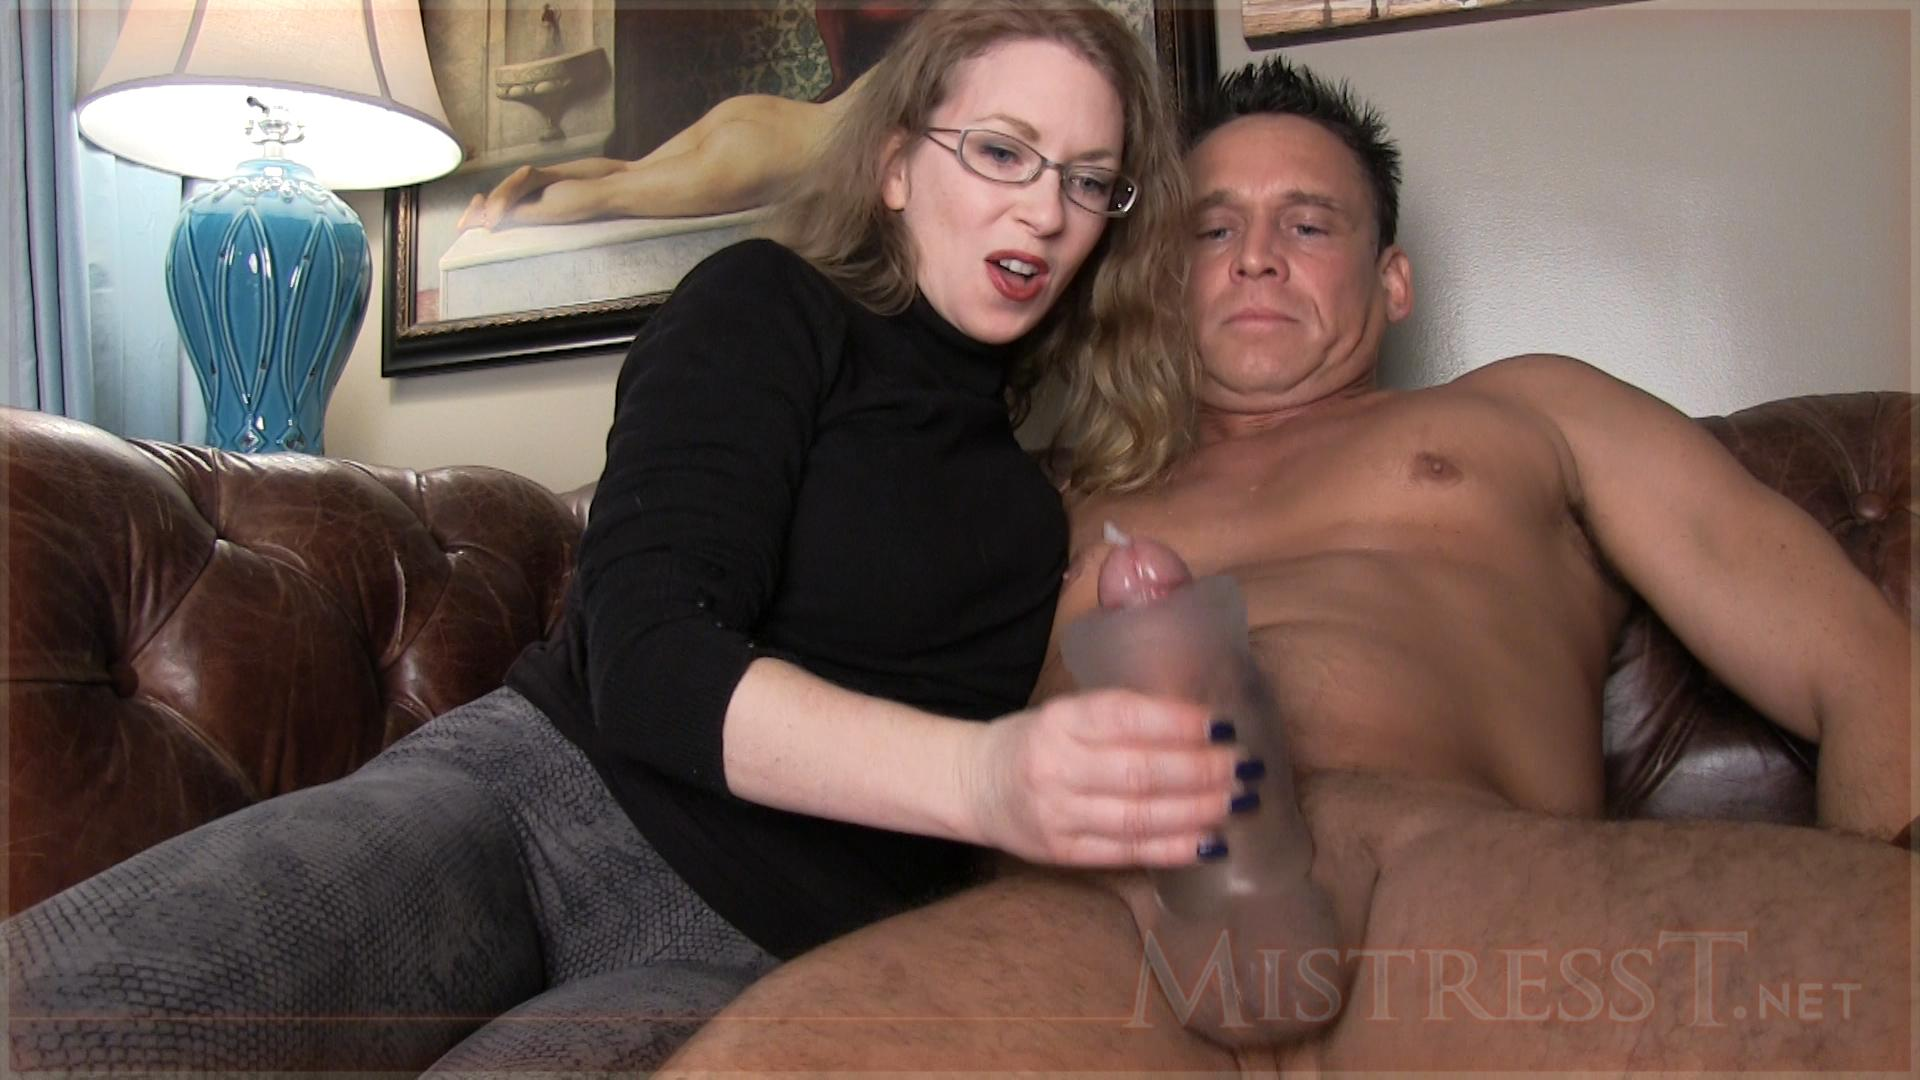 Nikki hillton interracial fucking tube